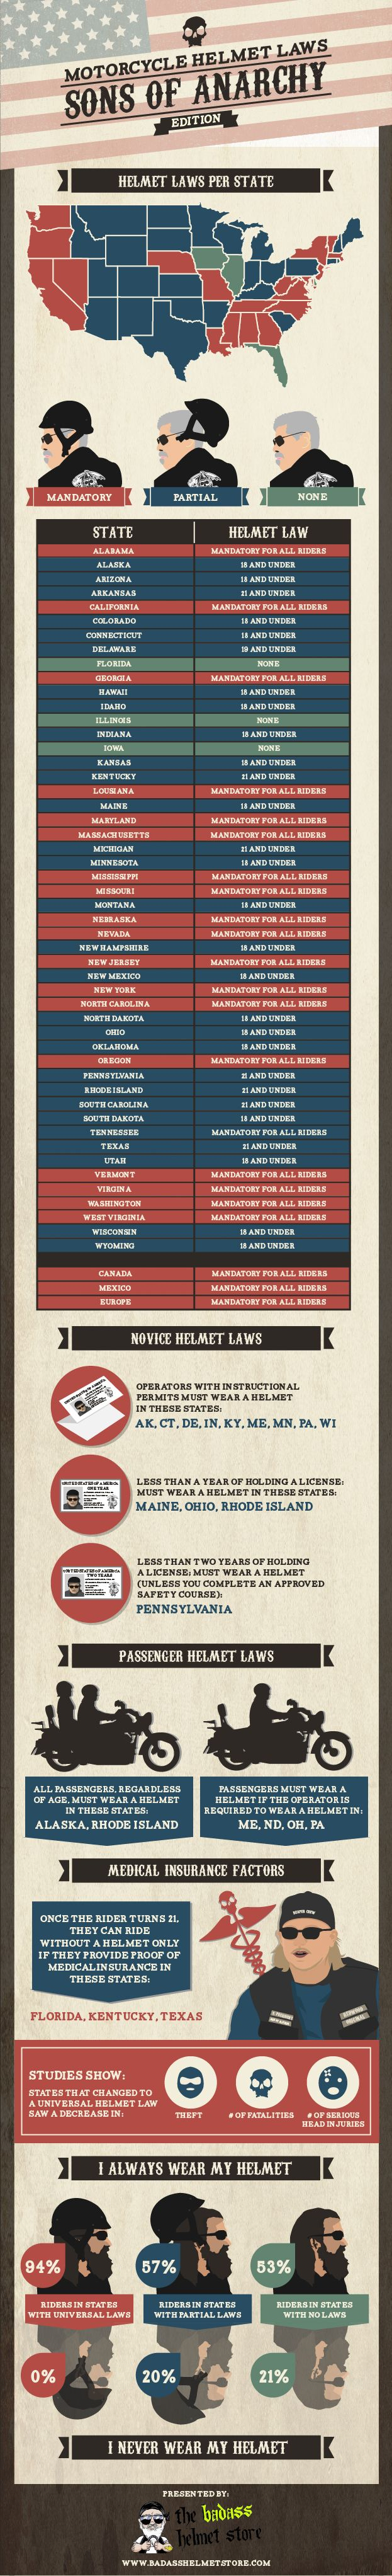 Sons of Anarchy infographic on motorcycle helmet laws by the badasshelmetstore.com